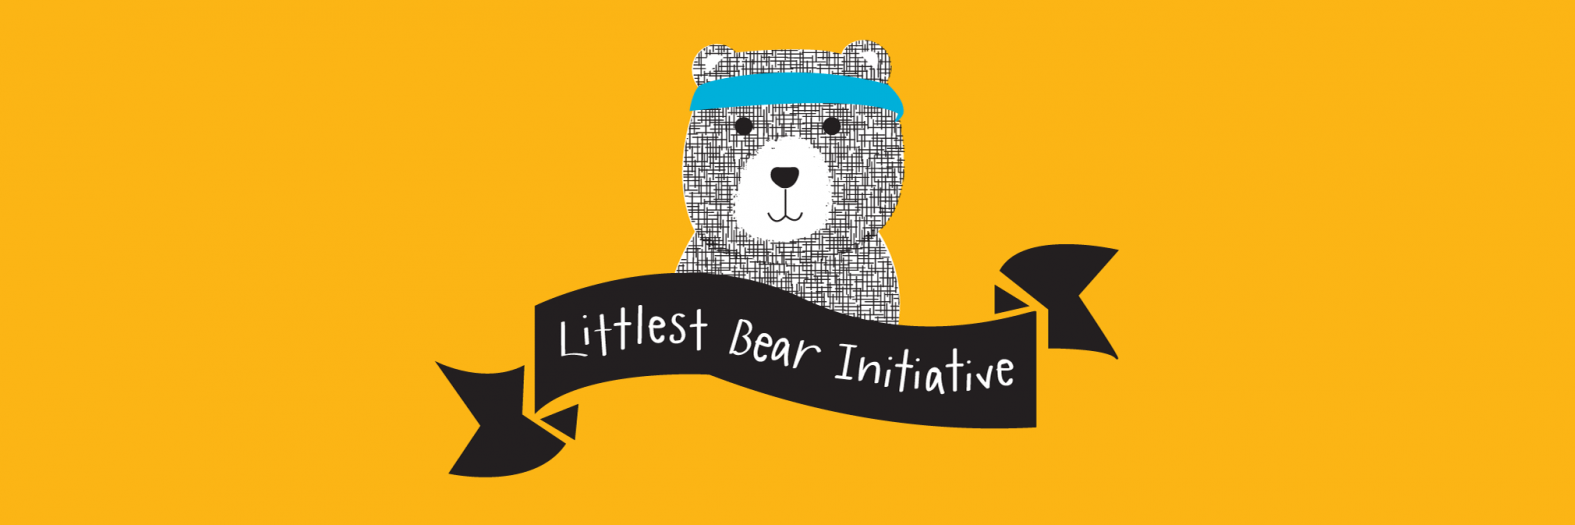 Littlest Bear Initiative